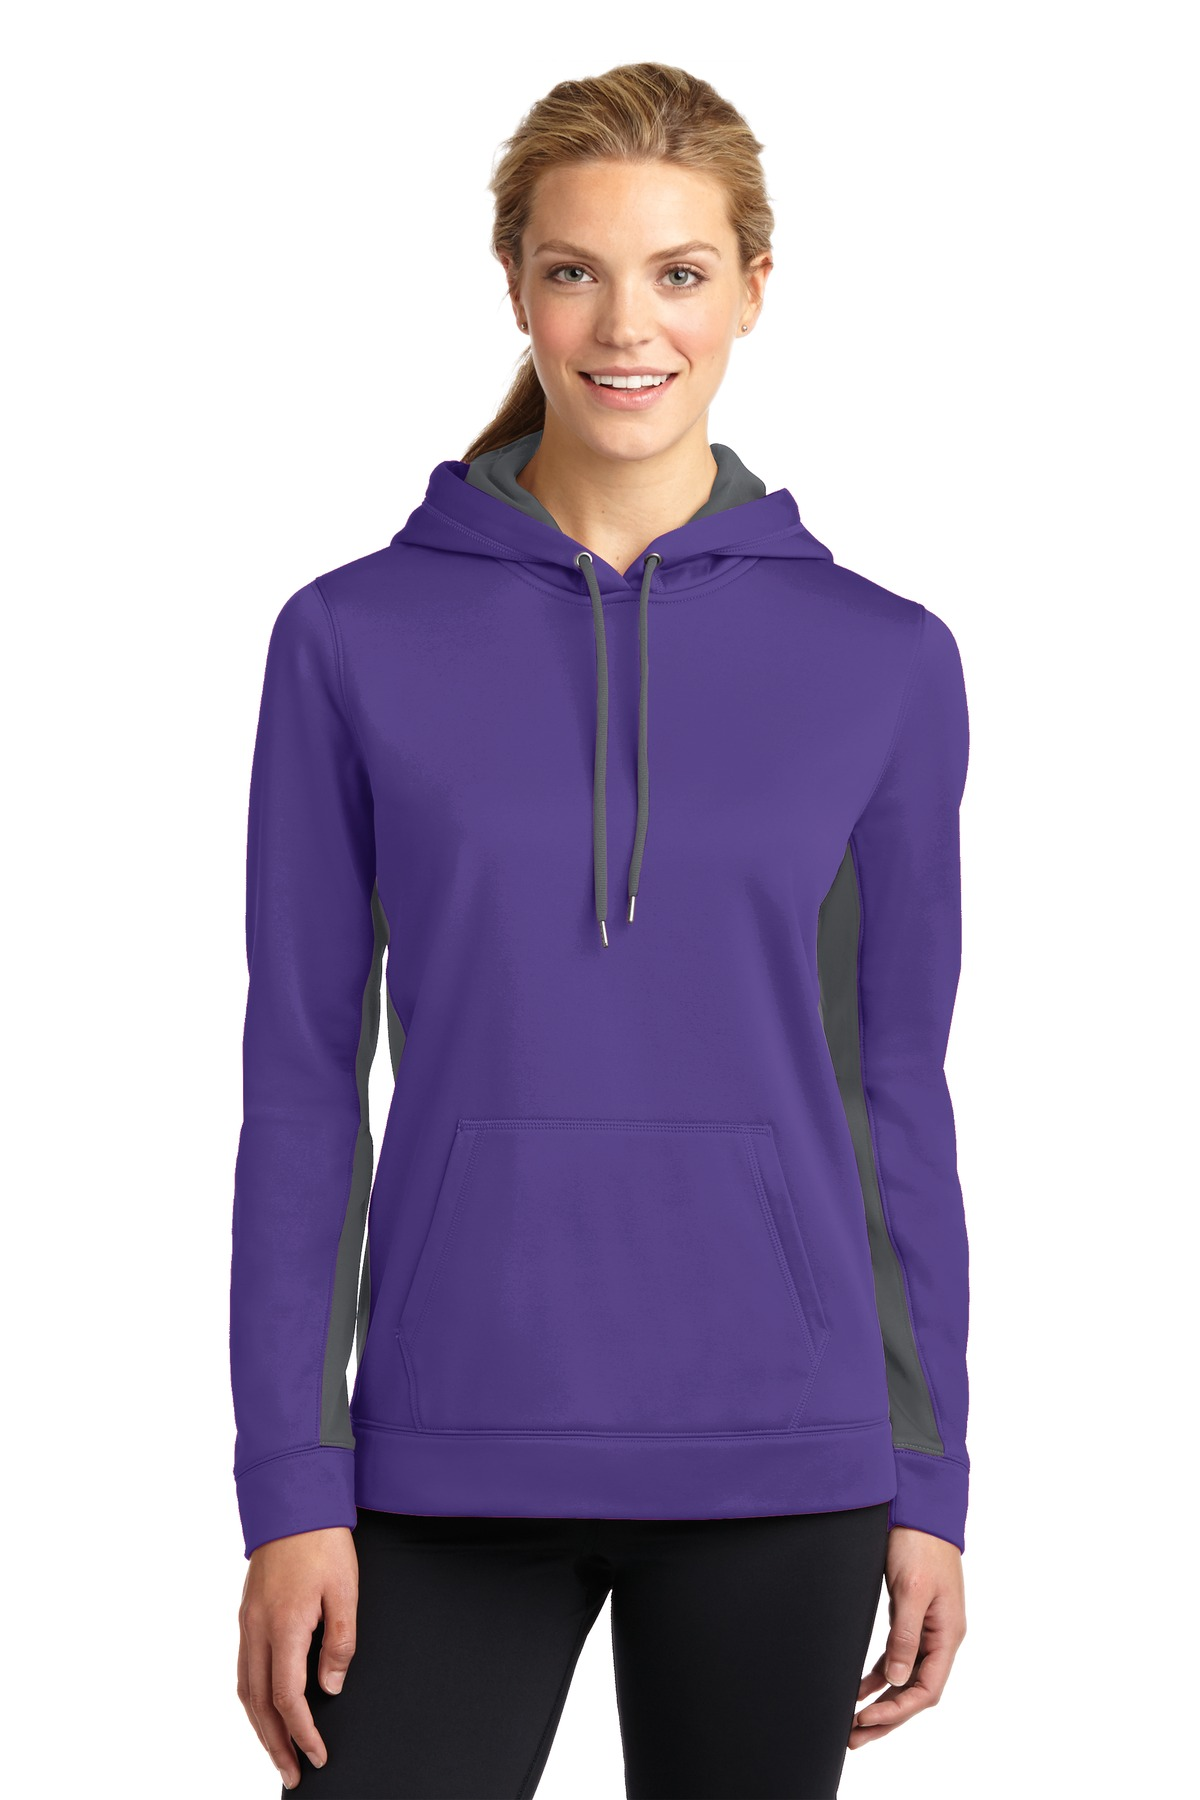 Sport-Tek ®  Ladies Sport-Wick ®  Fleece Colorblock Hooded Pullover. LST235 - Purple/ Dark Smoke Grey